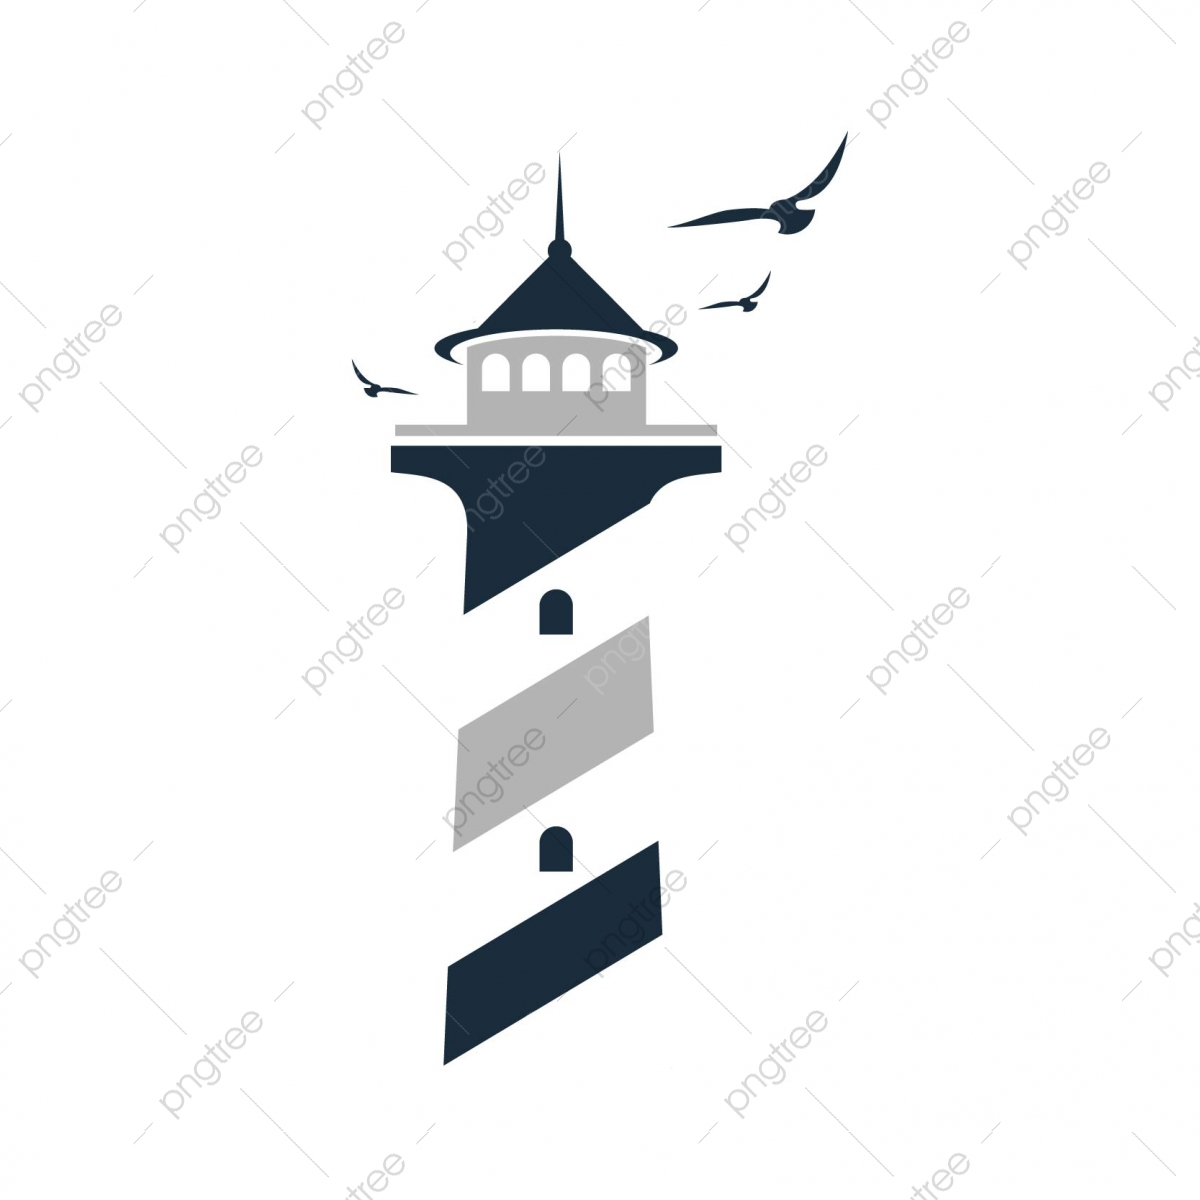 Light House Logo Design Template Icon Vector House Icons Logo Icons Light Icons Png And Vector With Transparent Background For Free Download